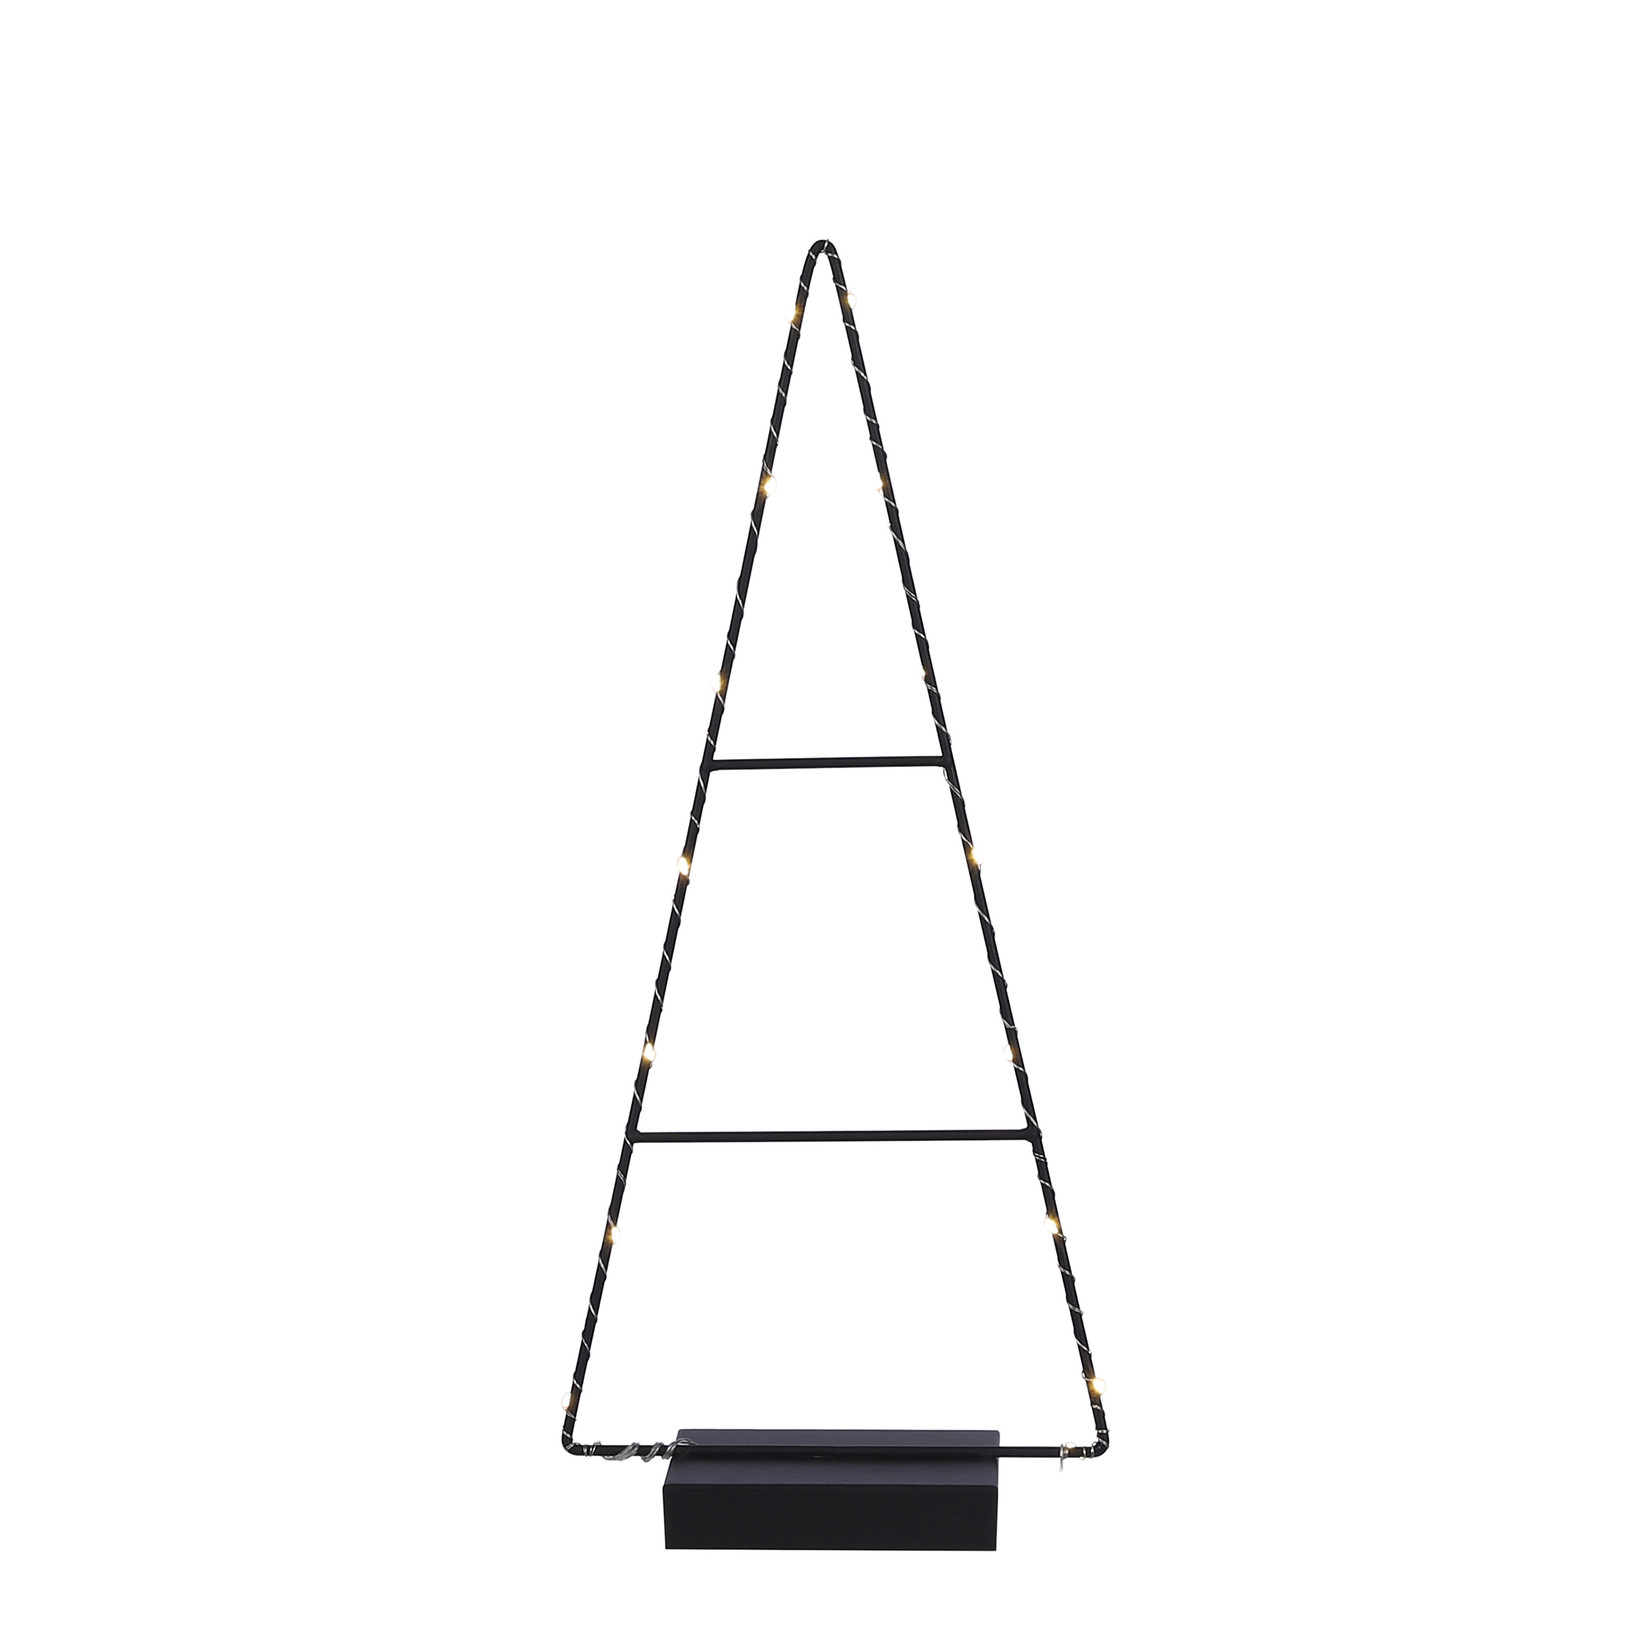 House of Seasons Decoratie boom zwart led battery operated